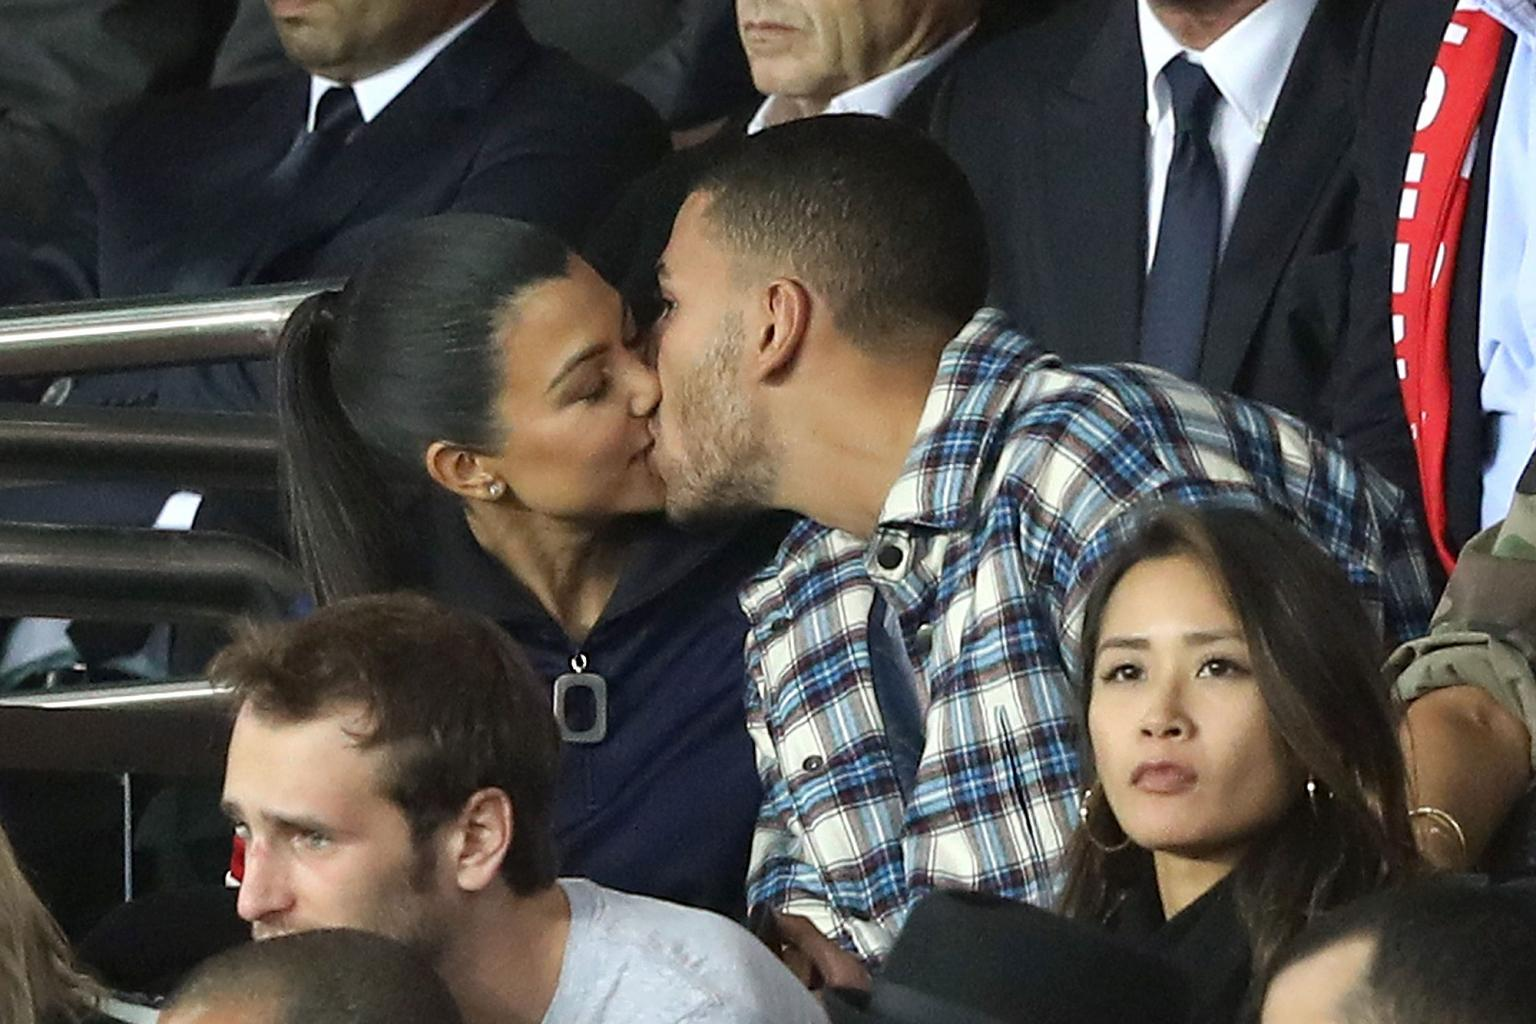 Kourtney Kardashian and Boyfriend Younes Bendjima Share Steamy Kiss at Paris Soccer Game — But He Appears Distracted